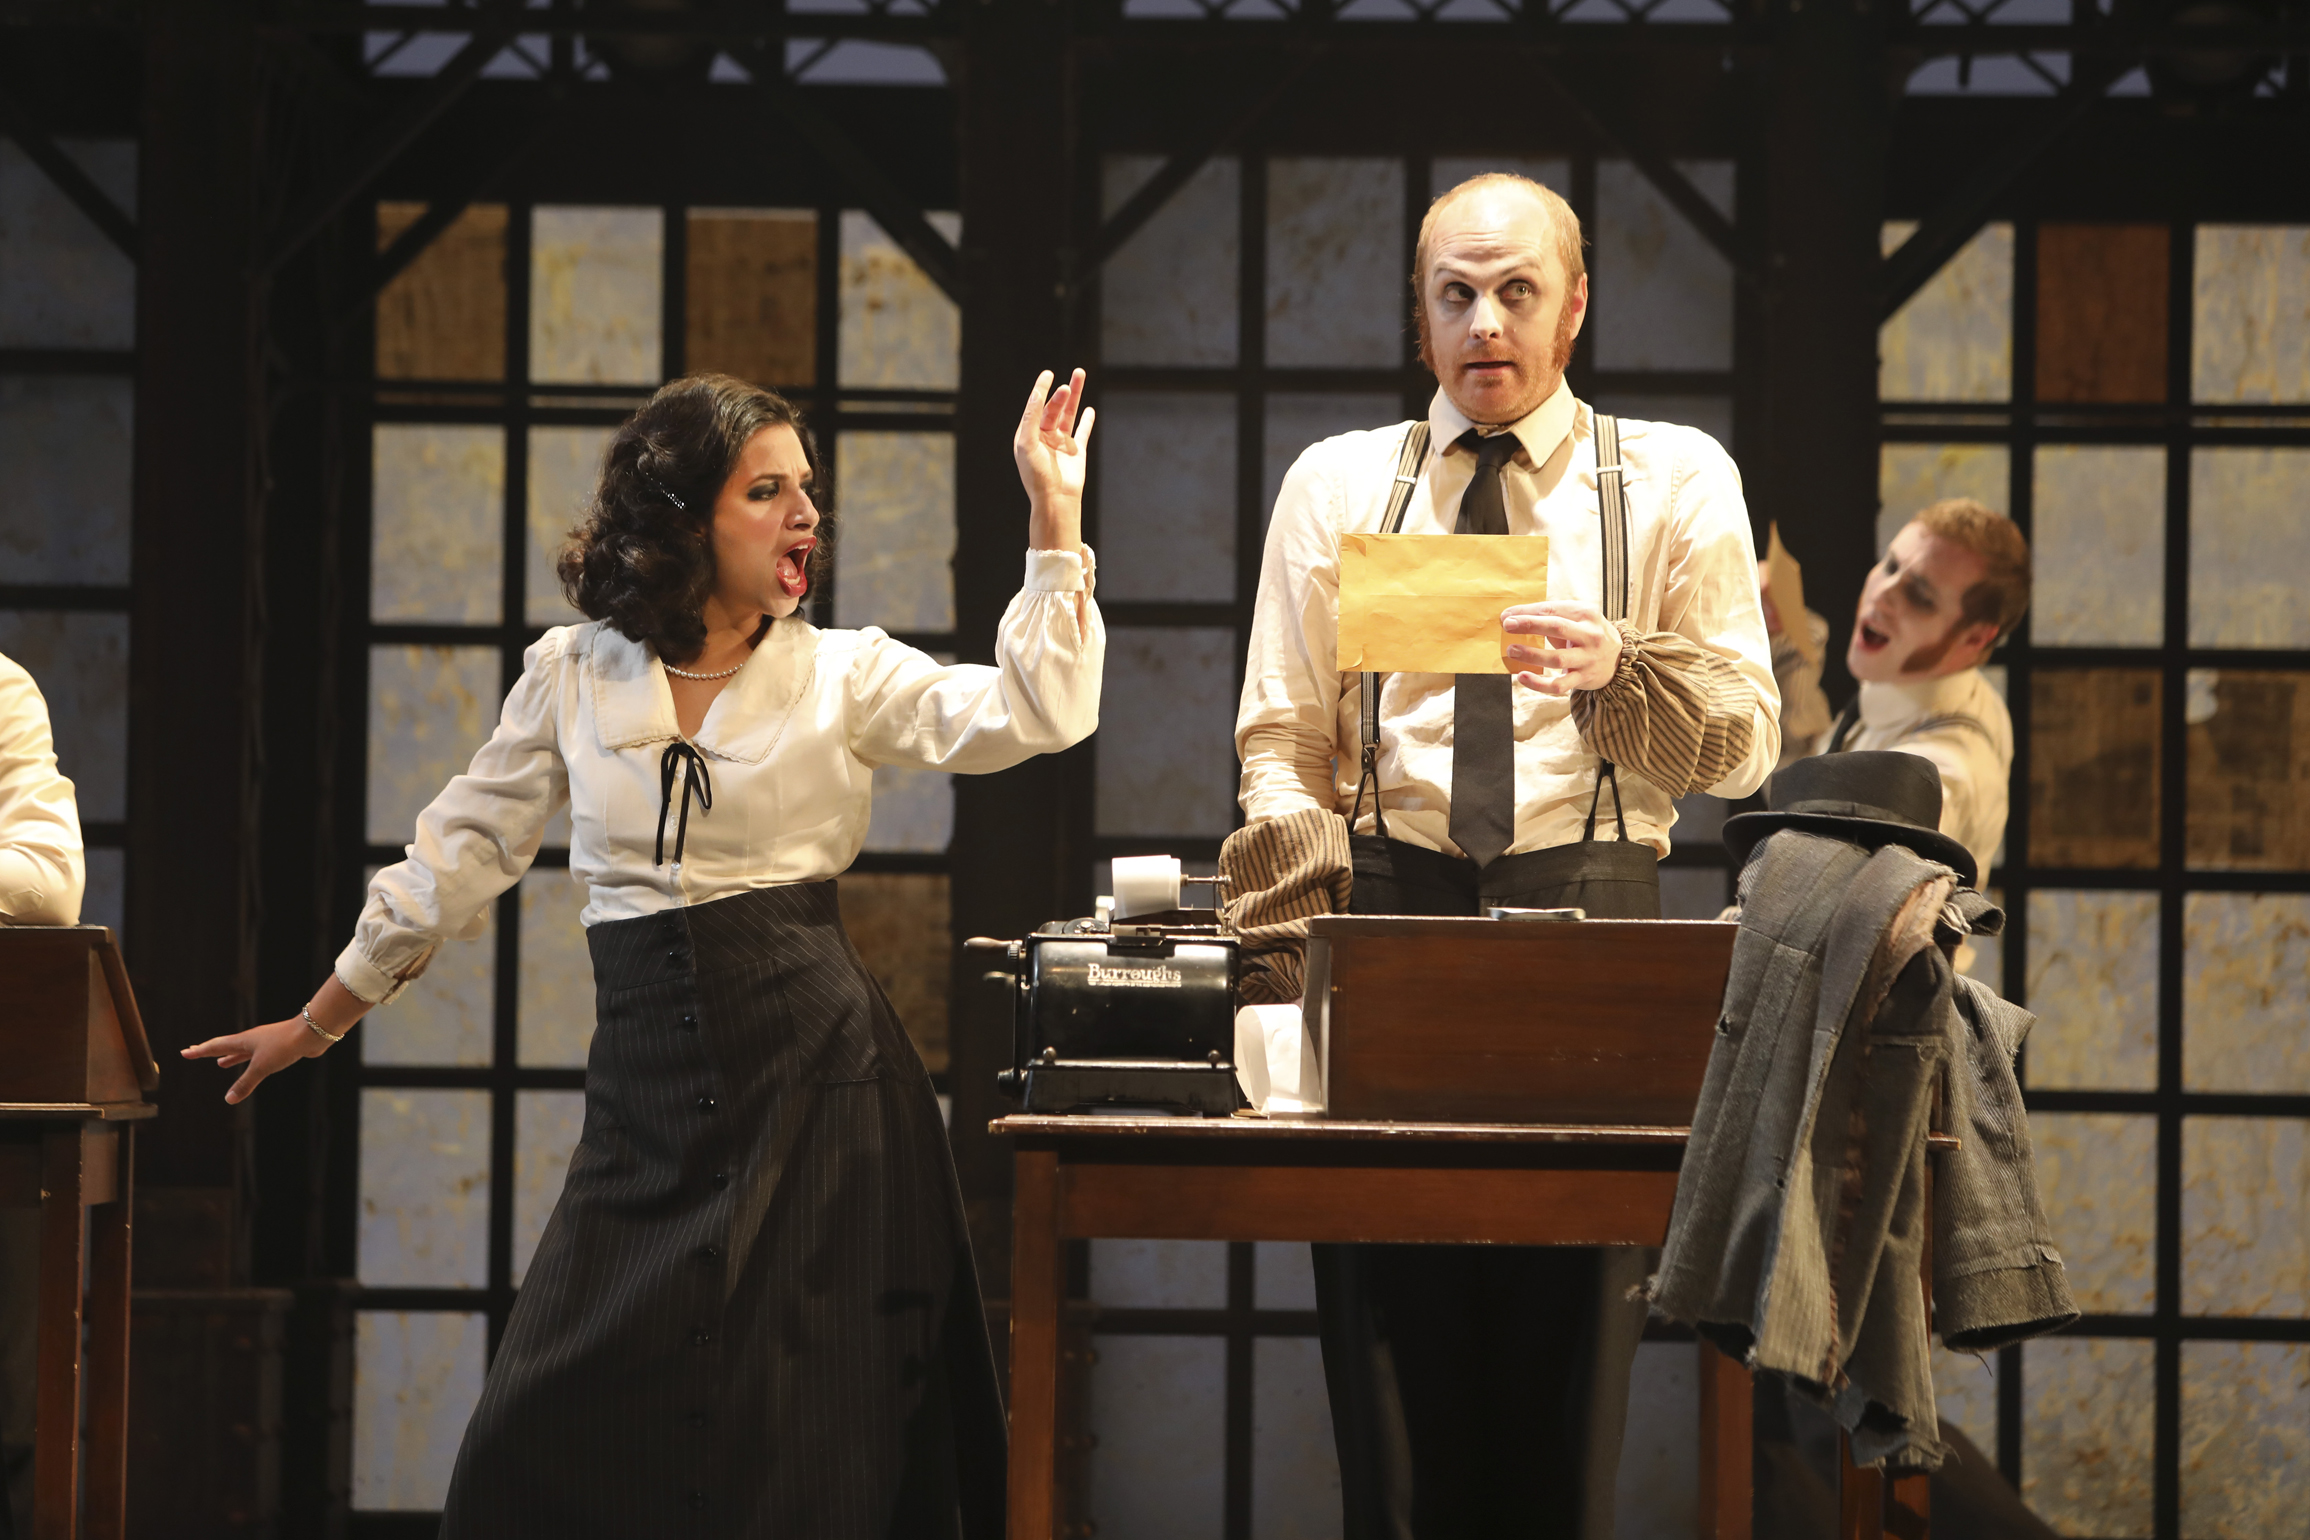 Vancouver Opera, The Overcoat Cred Tim Matheson 195A3079e.jpg